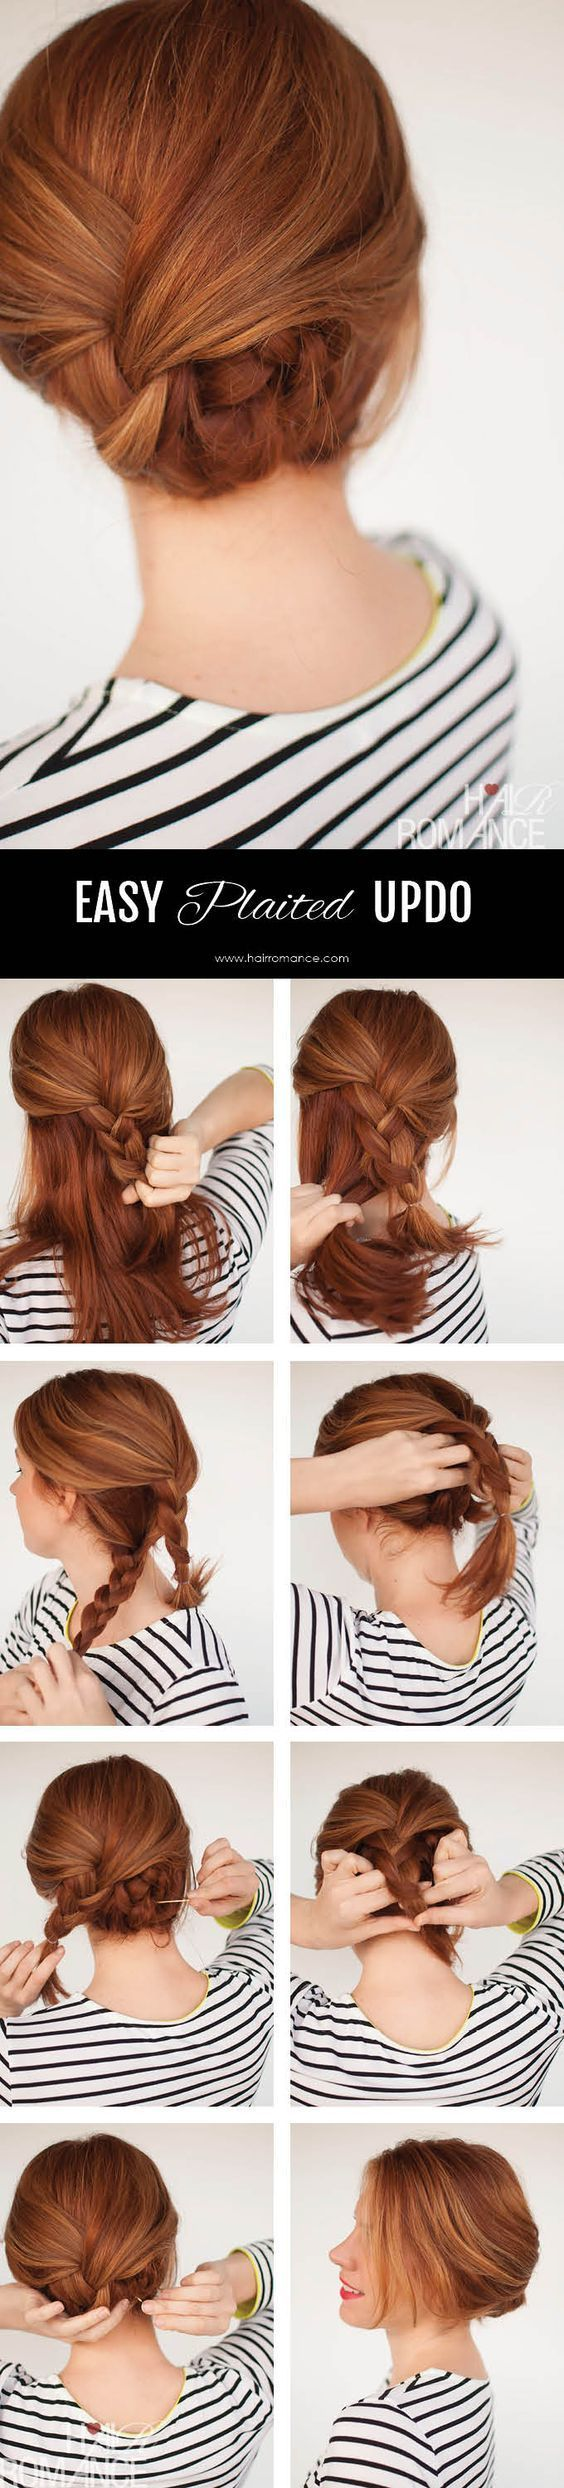 easy yet trendy hairstyles for lazy women short hairstyle